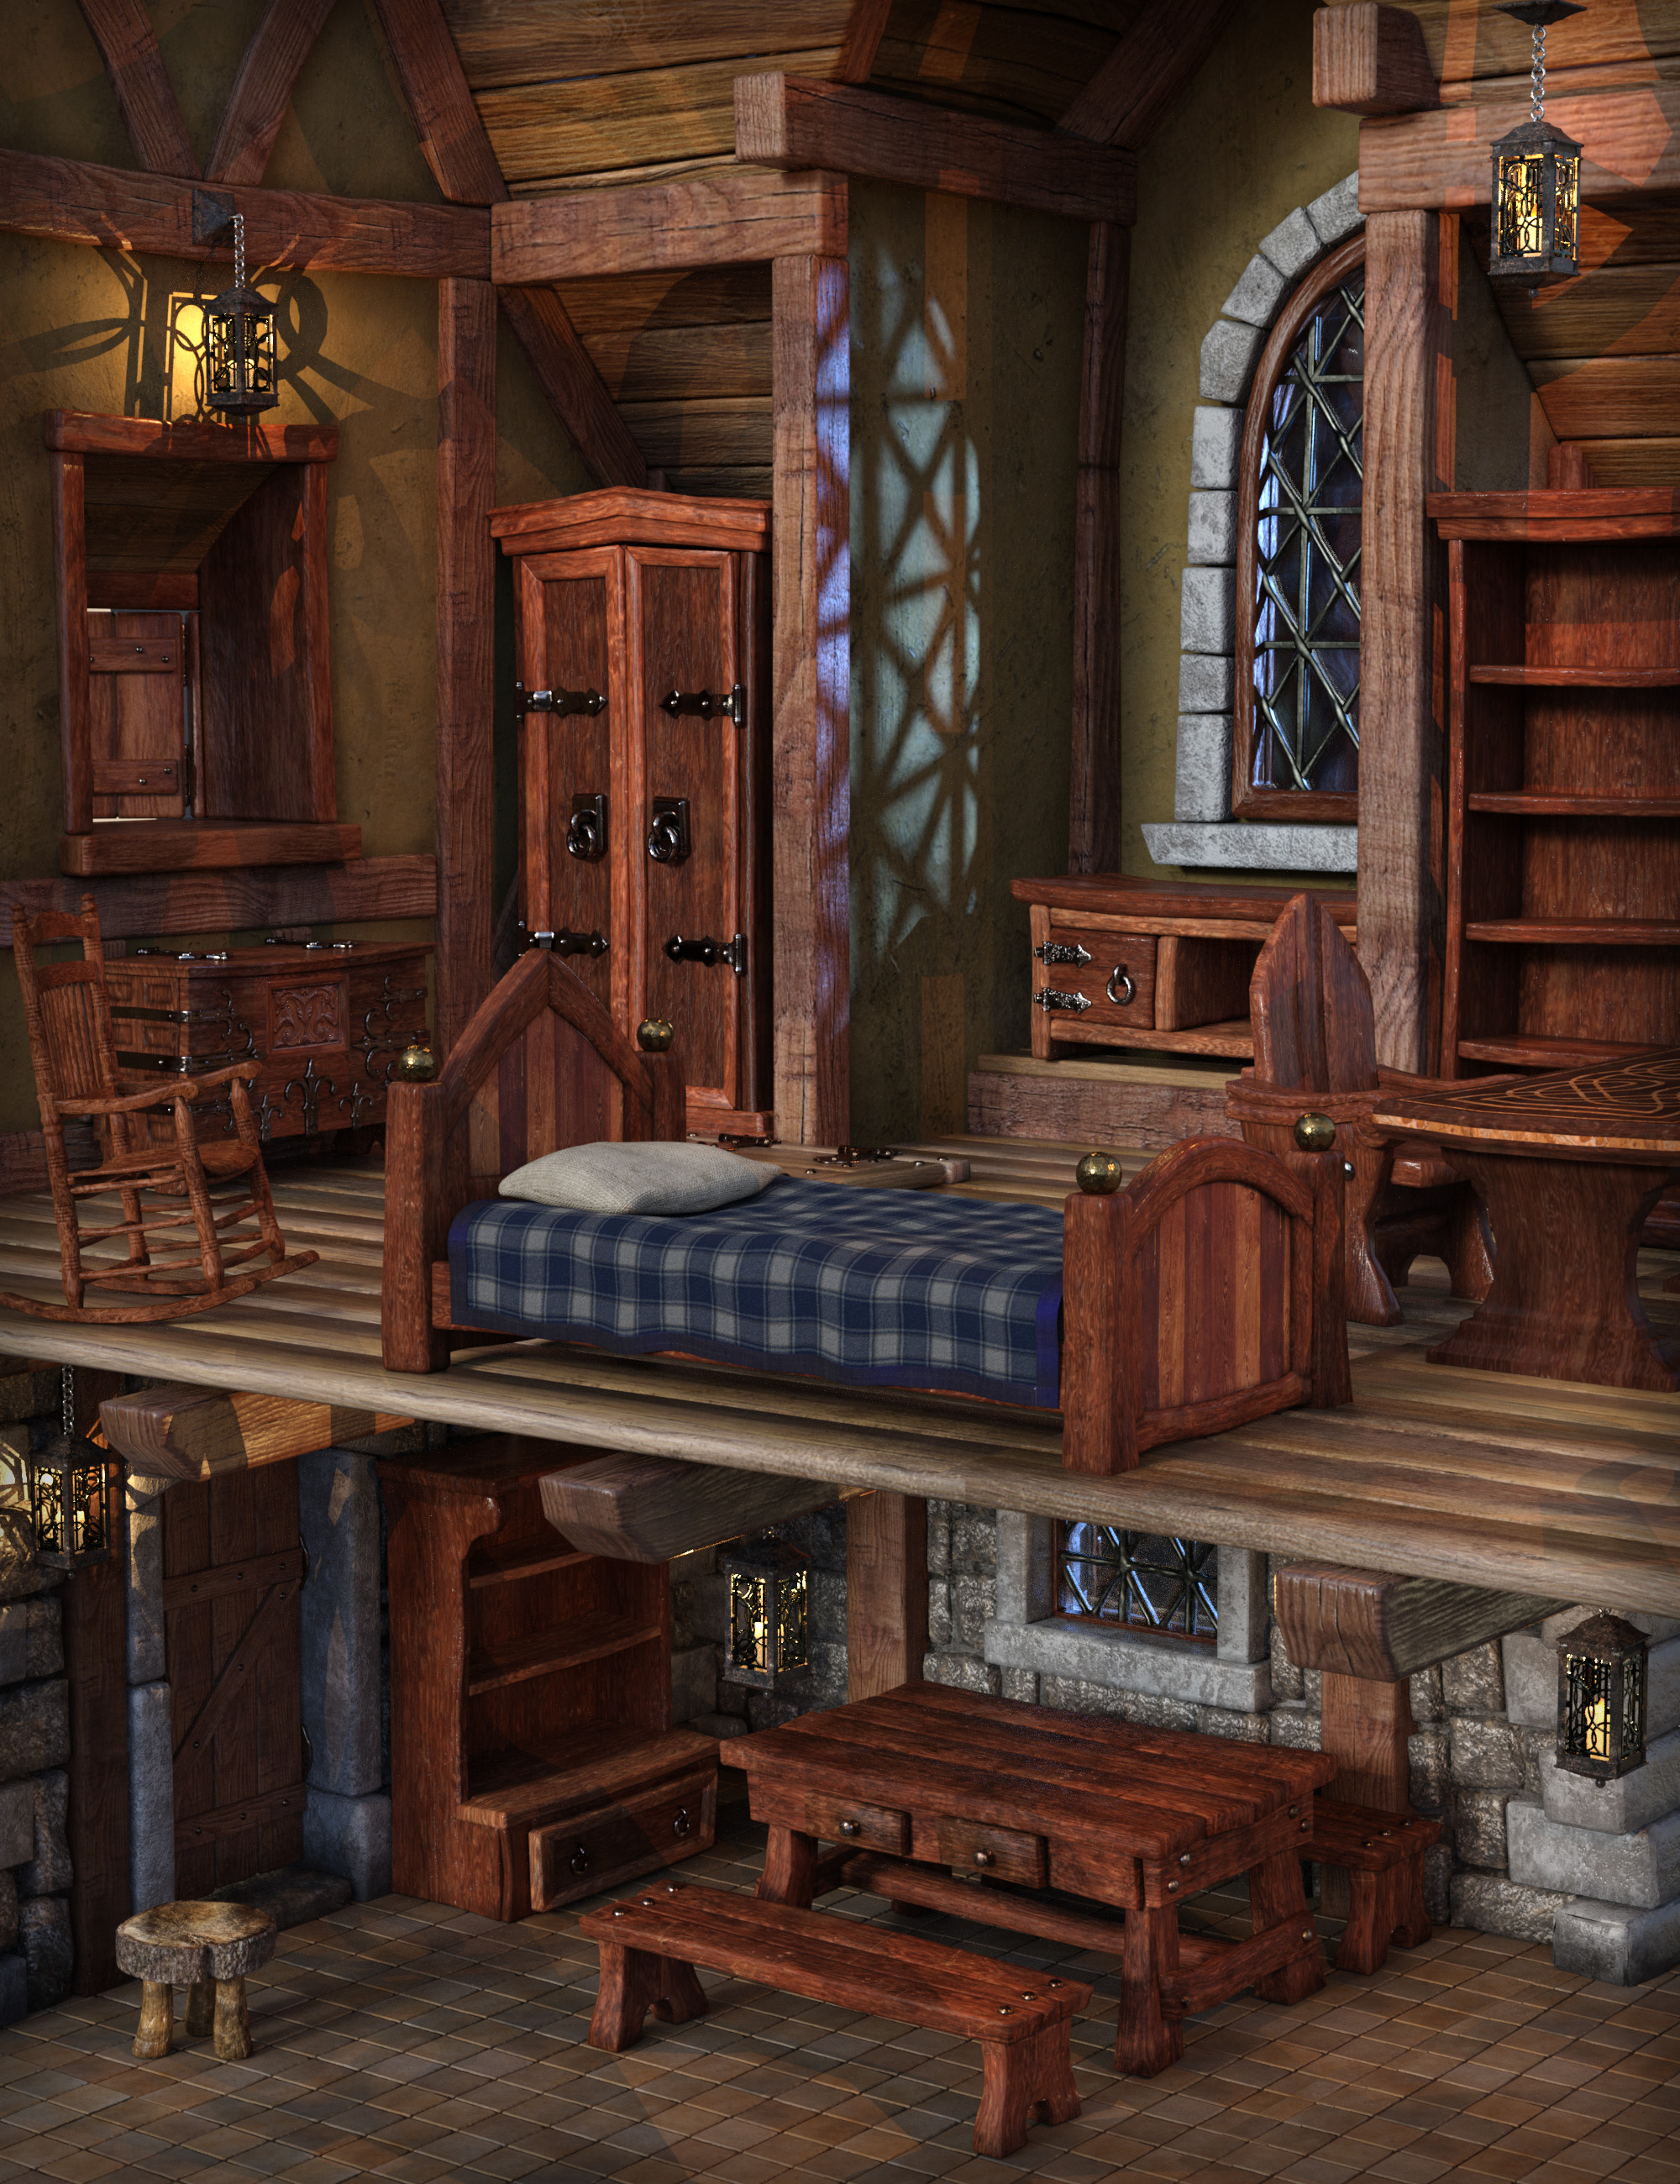 Fairytale Furniture by: The Alchemist, 3D Models by Daz 3D